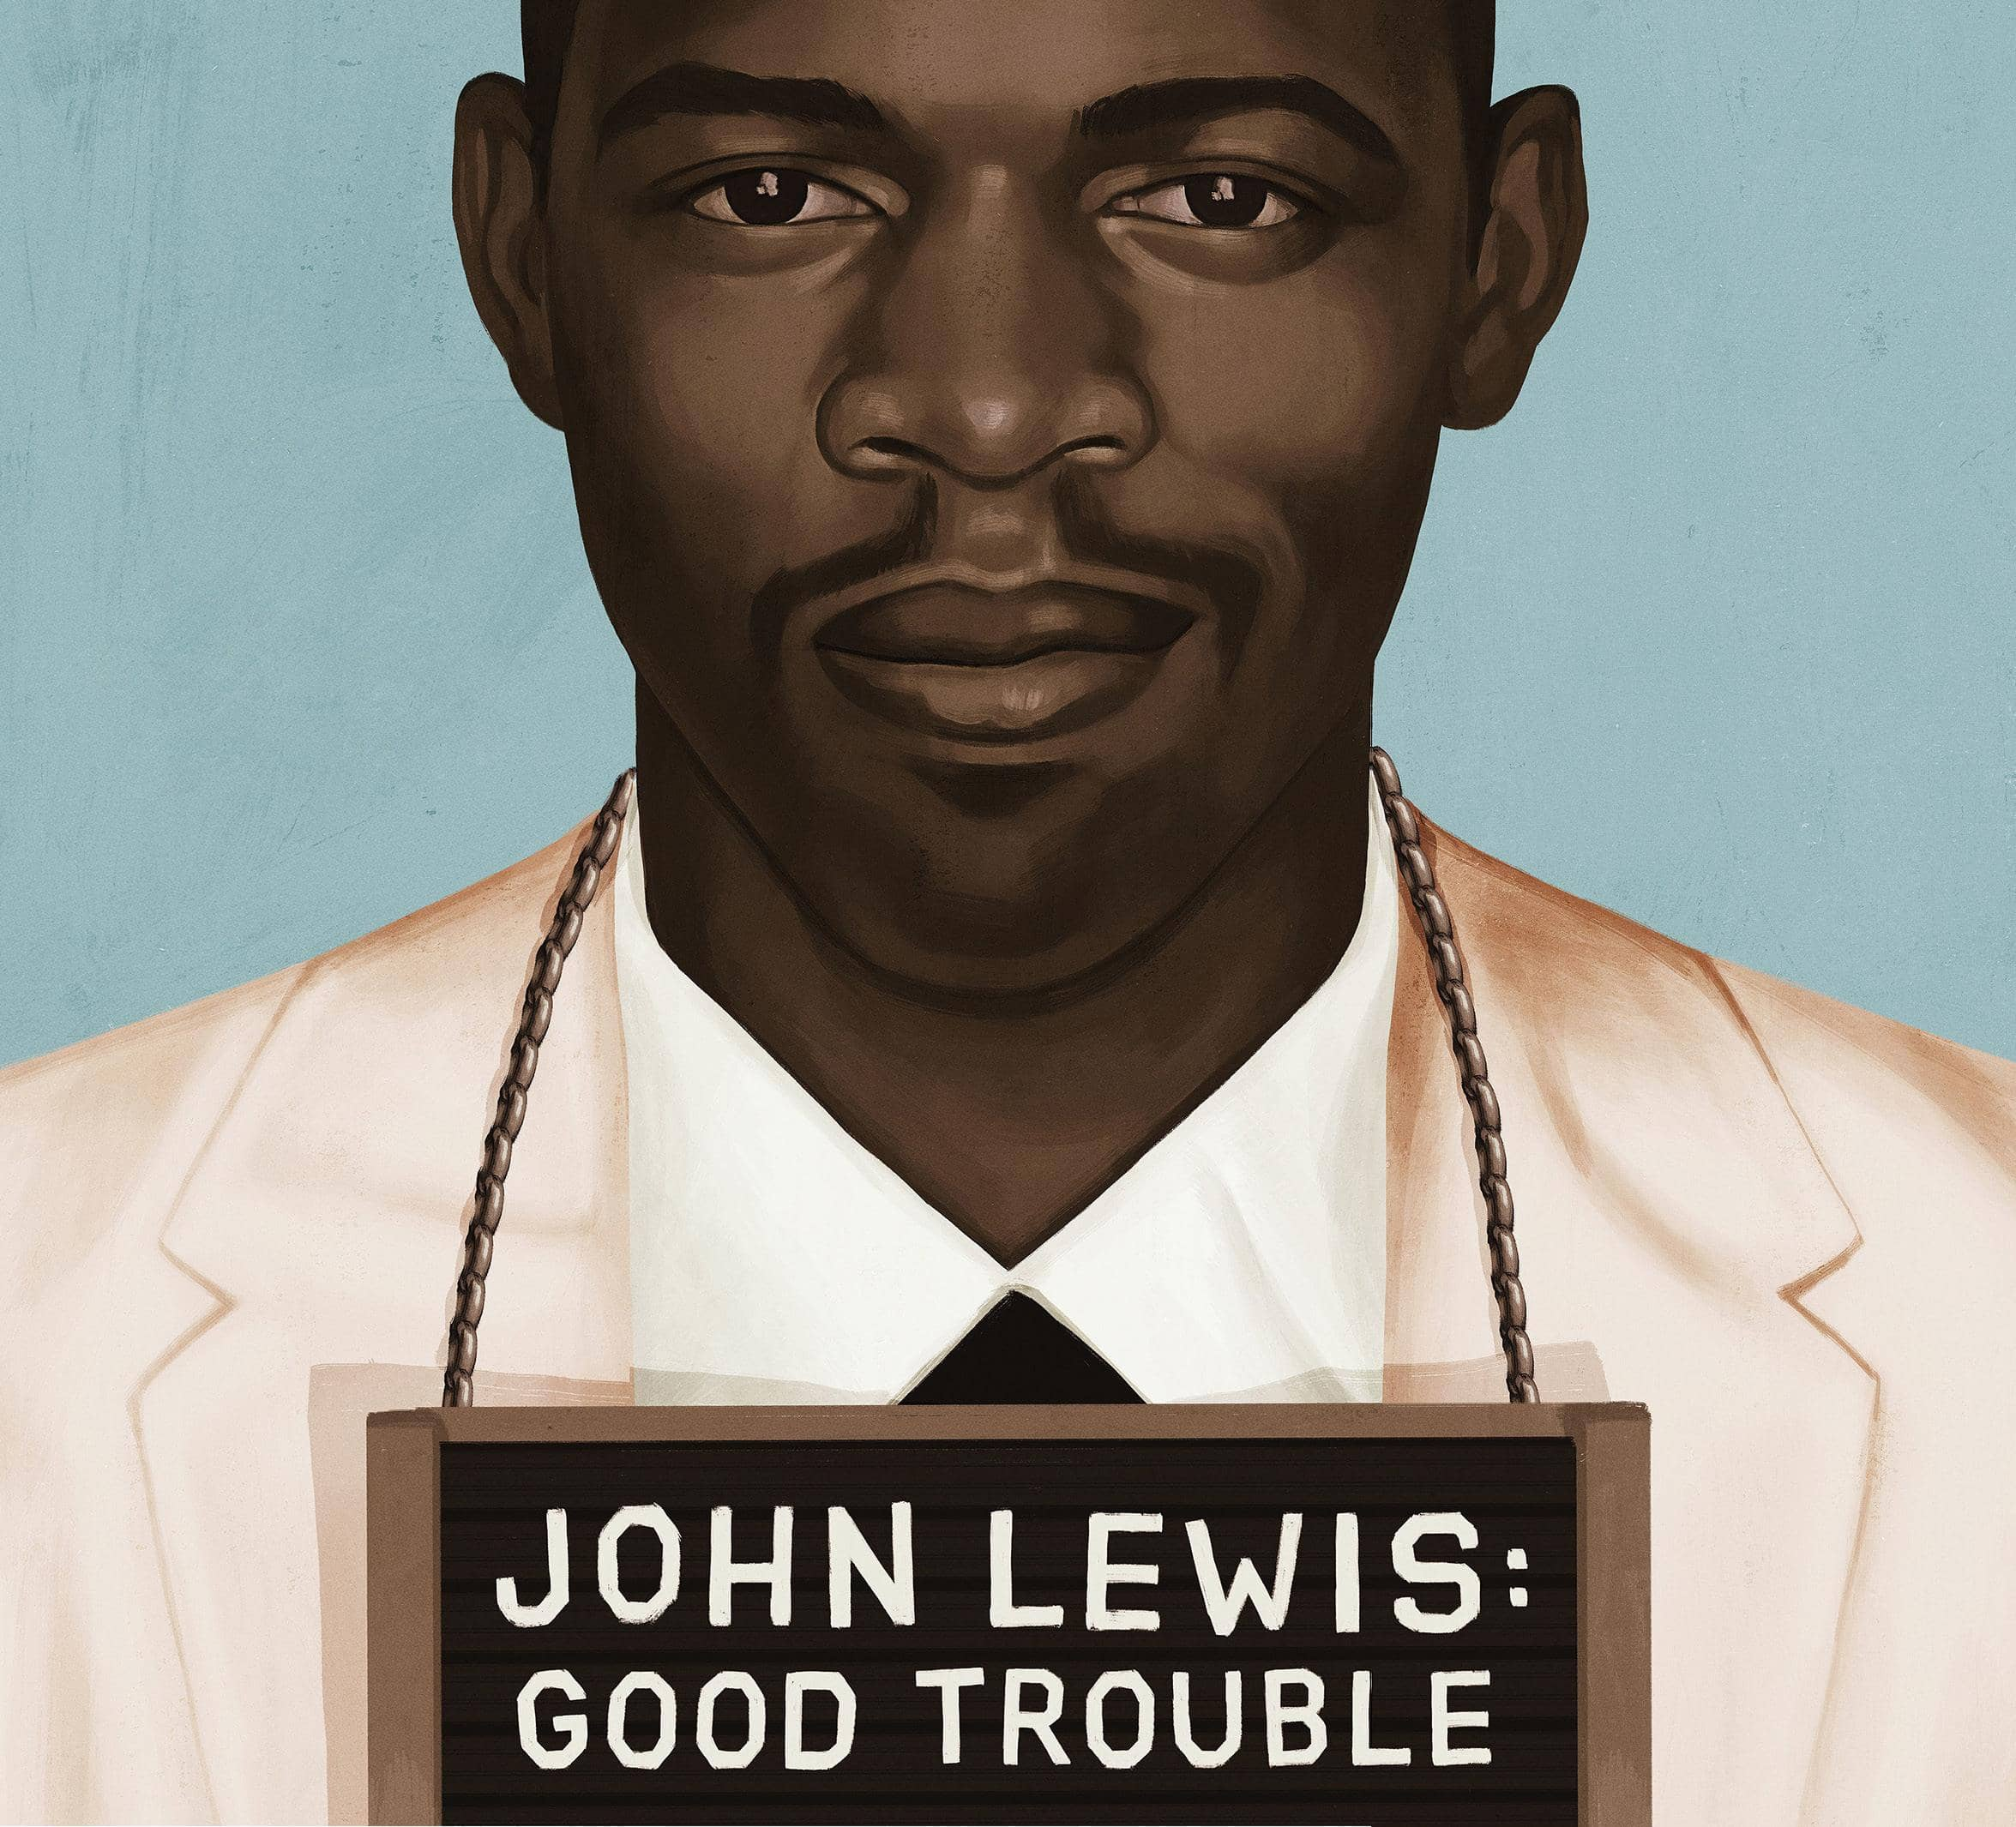 A TIMELY PORTRAIT IN 'JOHN LEWIS: GOOD TROUBLE'